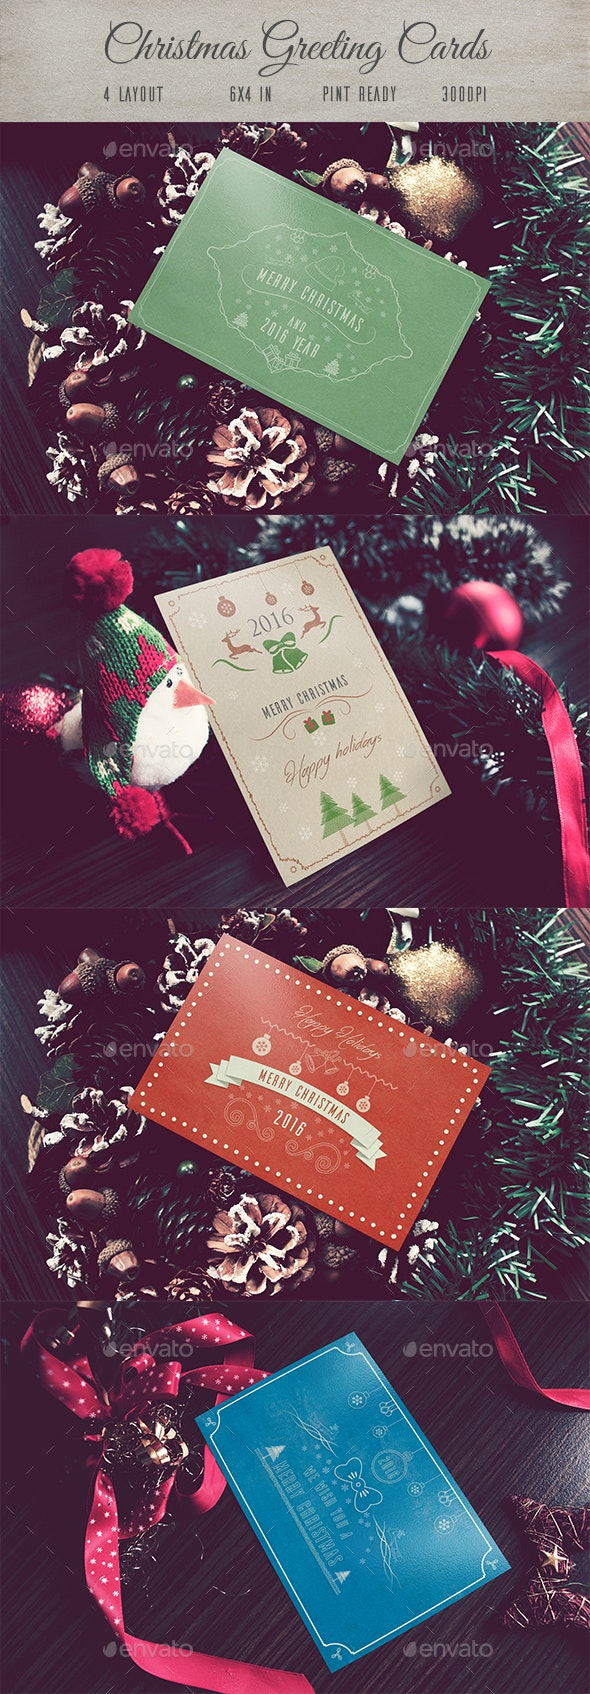 4 Christmas Greeting Cards - Holiday Greeting Cards